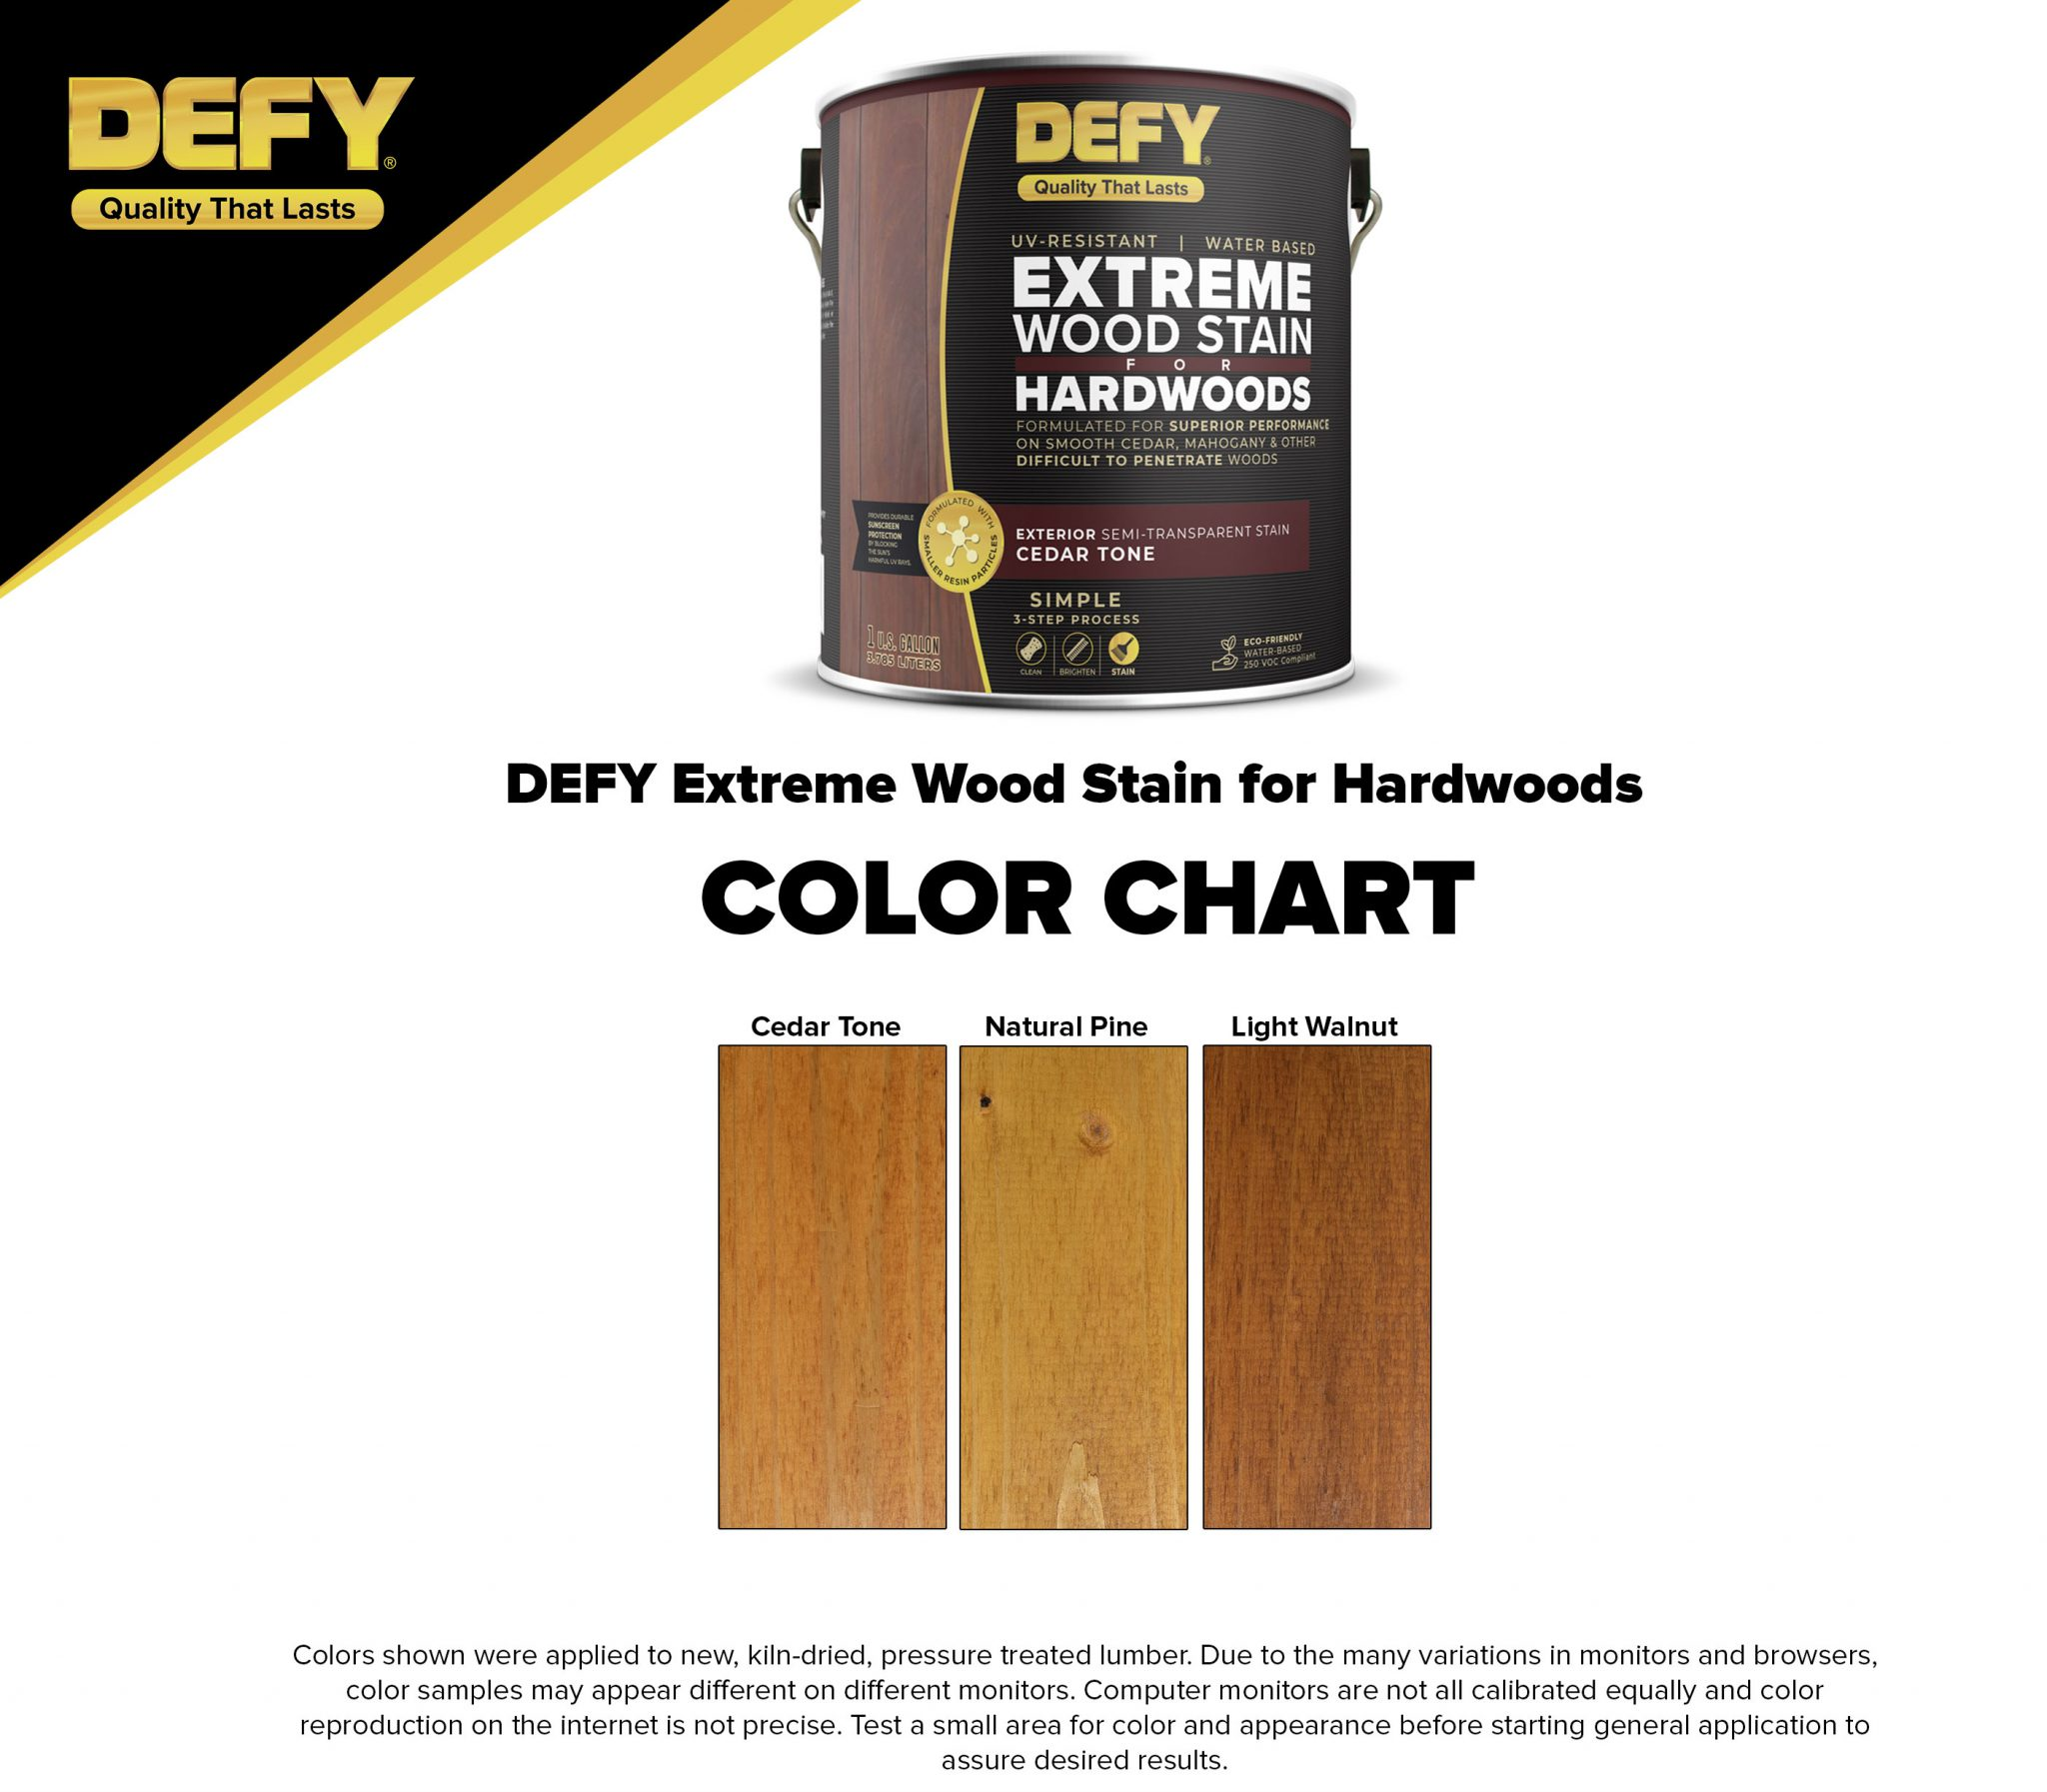 Defy-Hardwood-Stain-Colors2